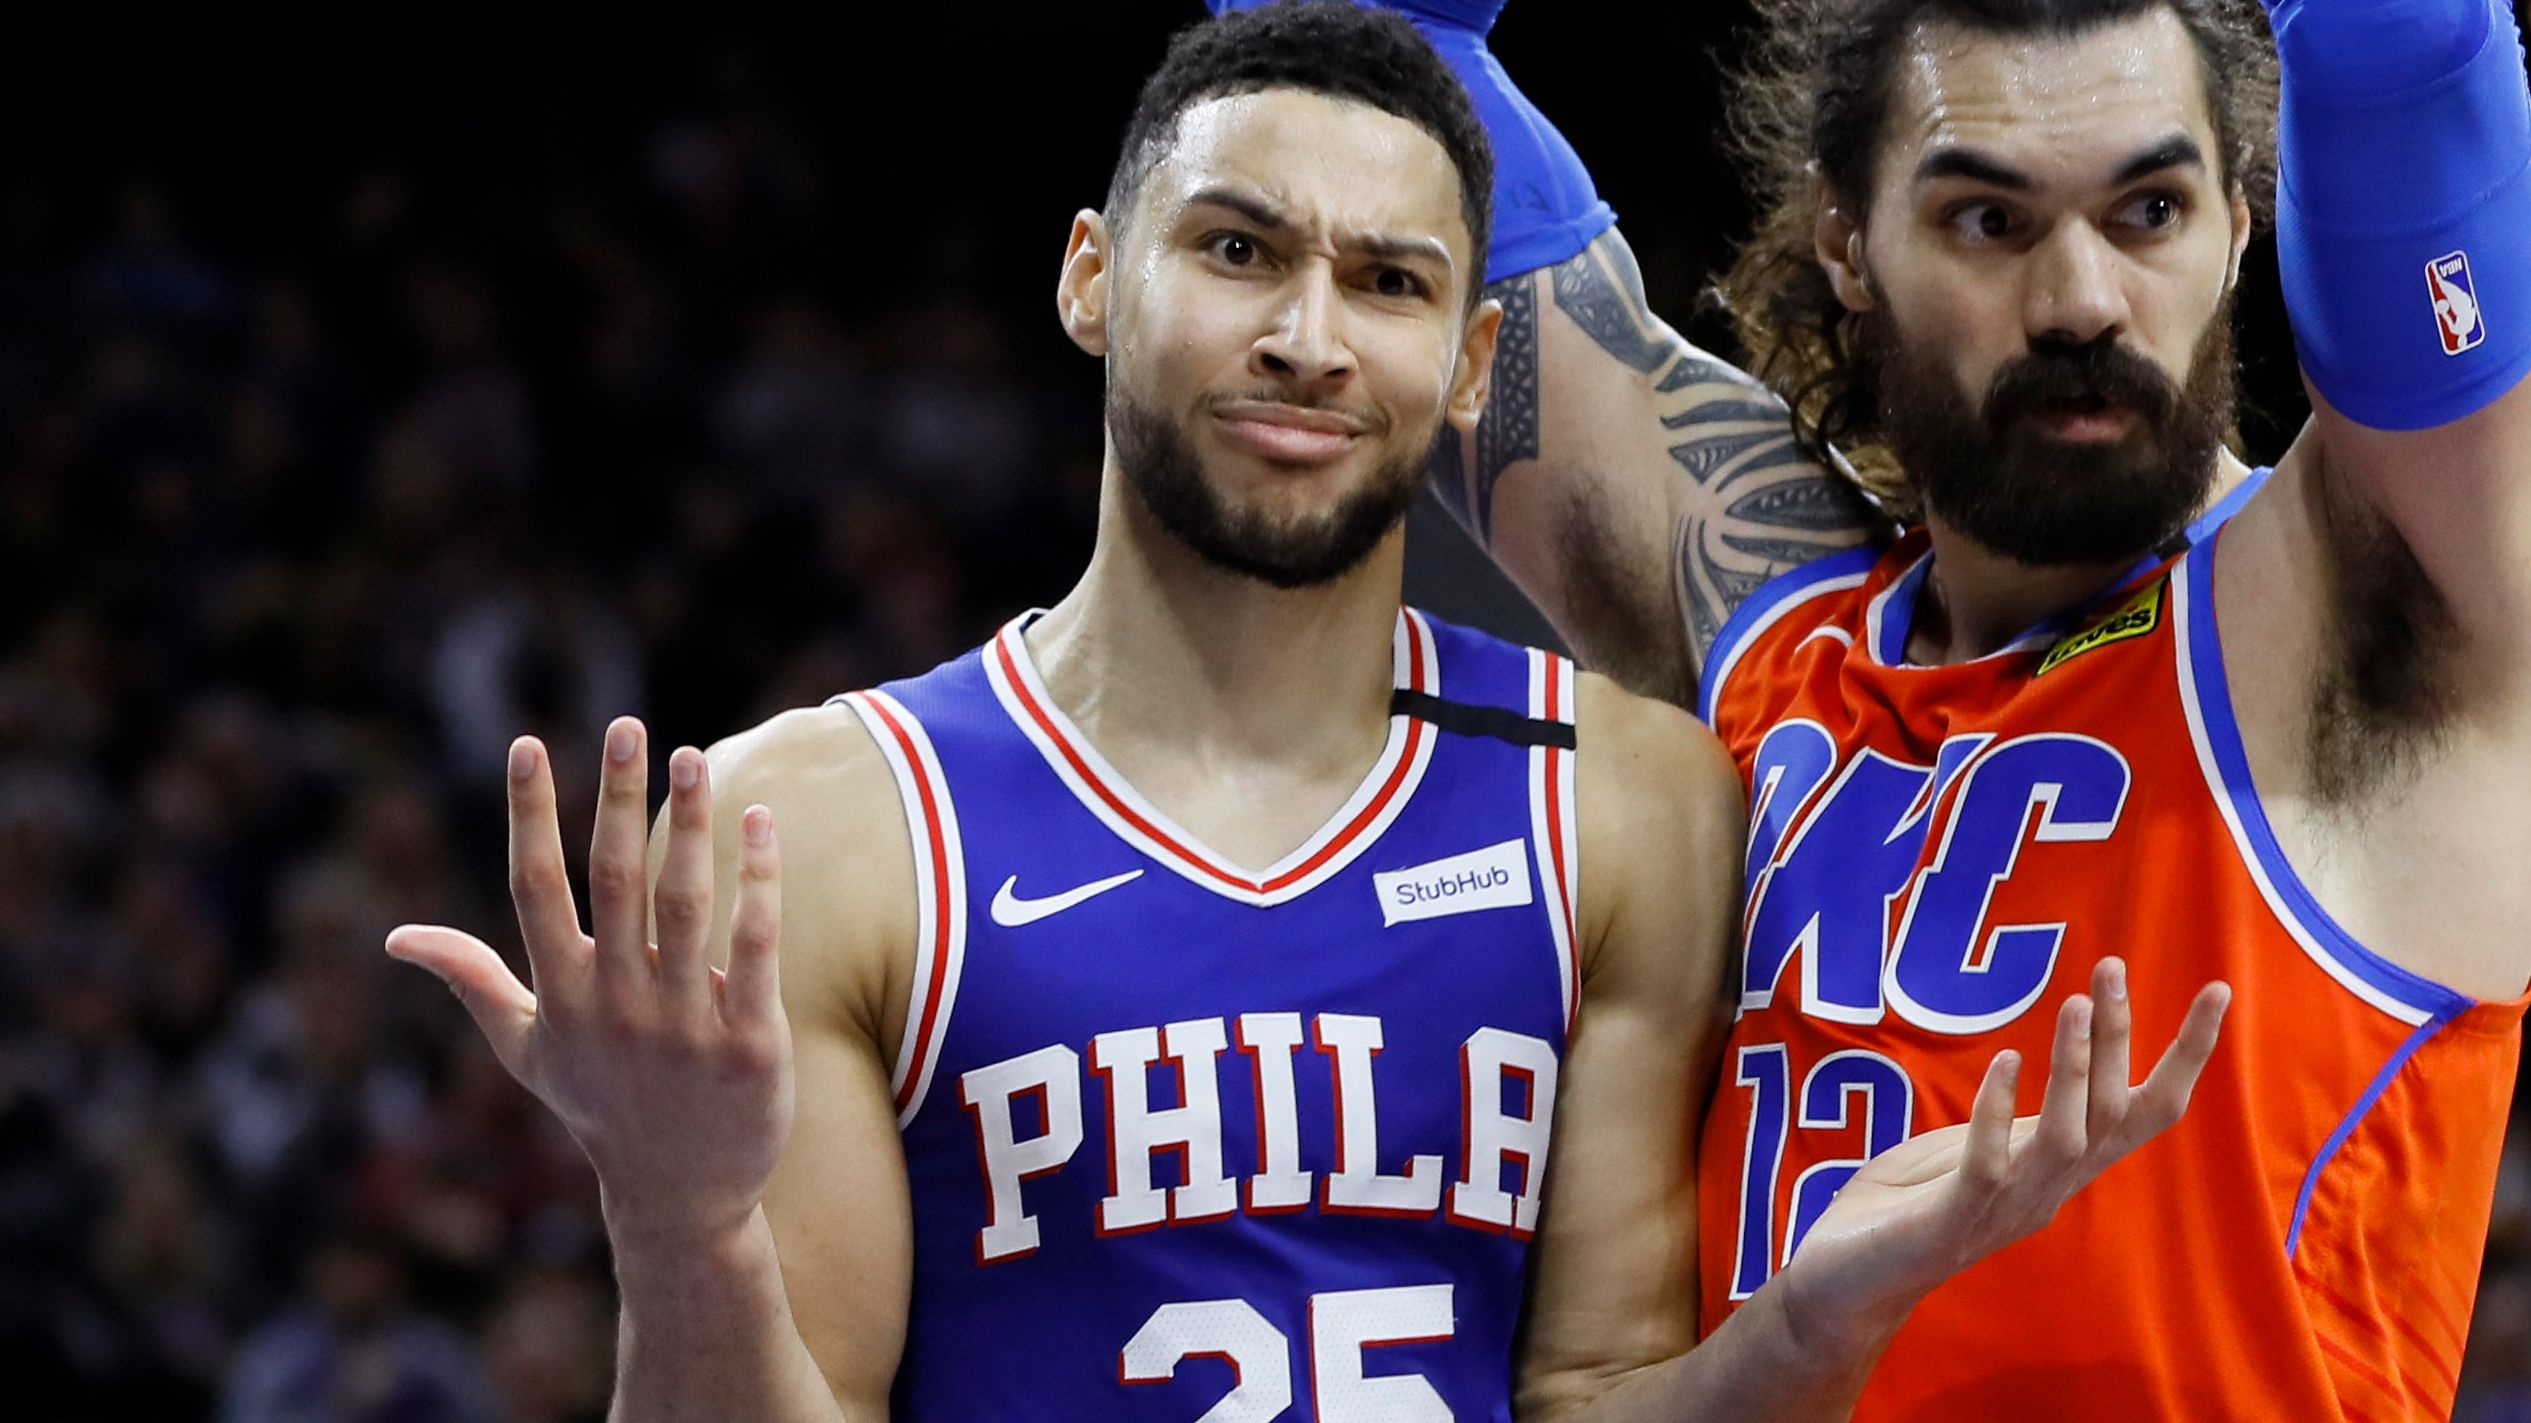 Fans deliver brutal verdict as Ben Simmons trails in NBA All-Star voting